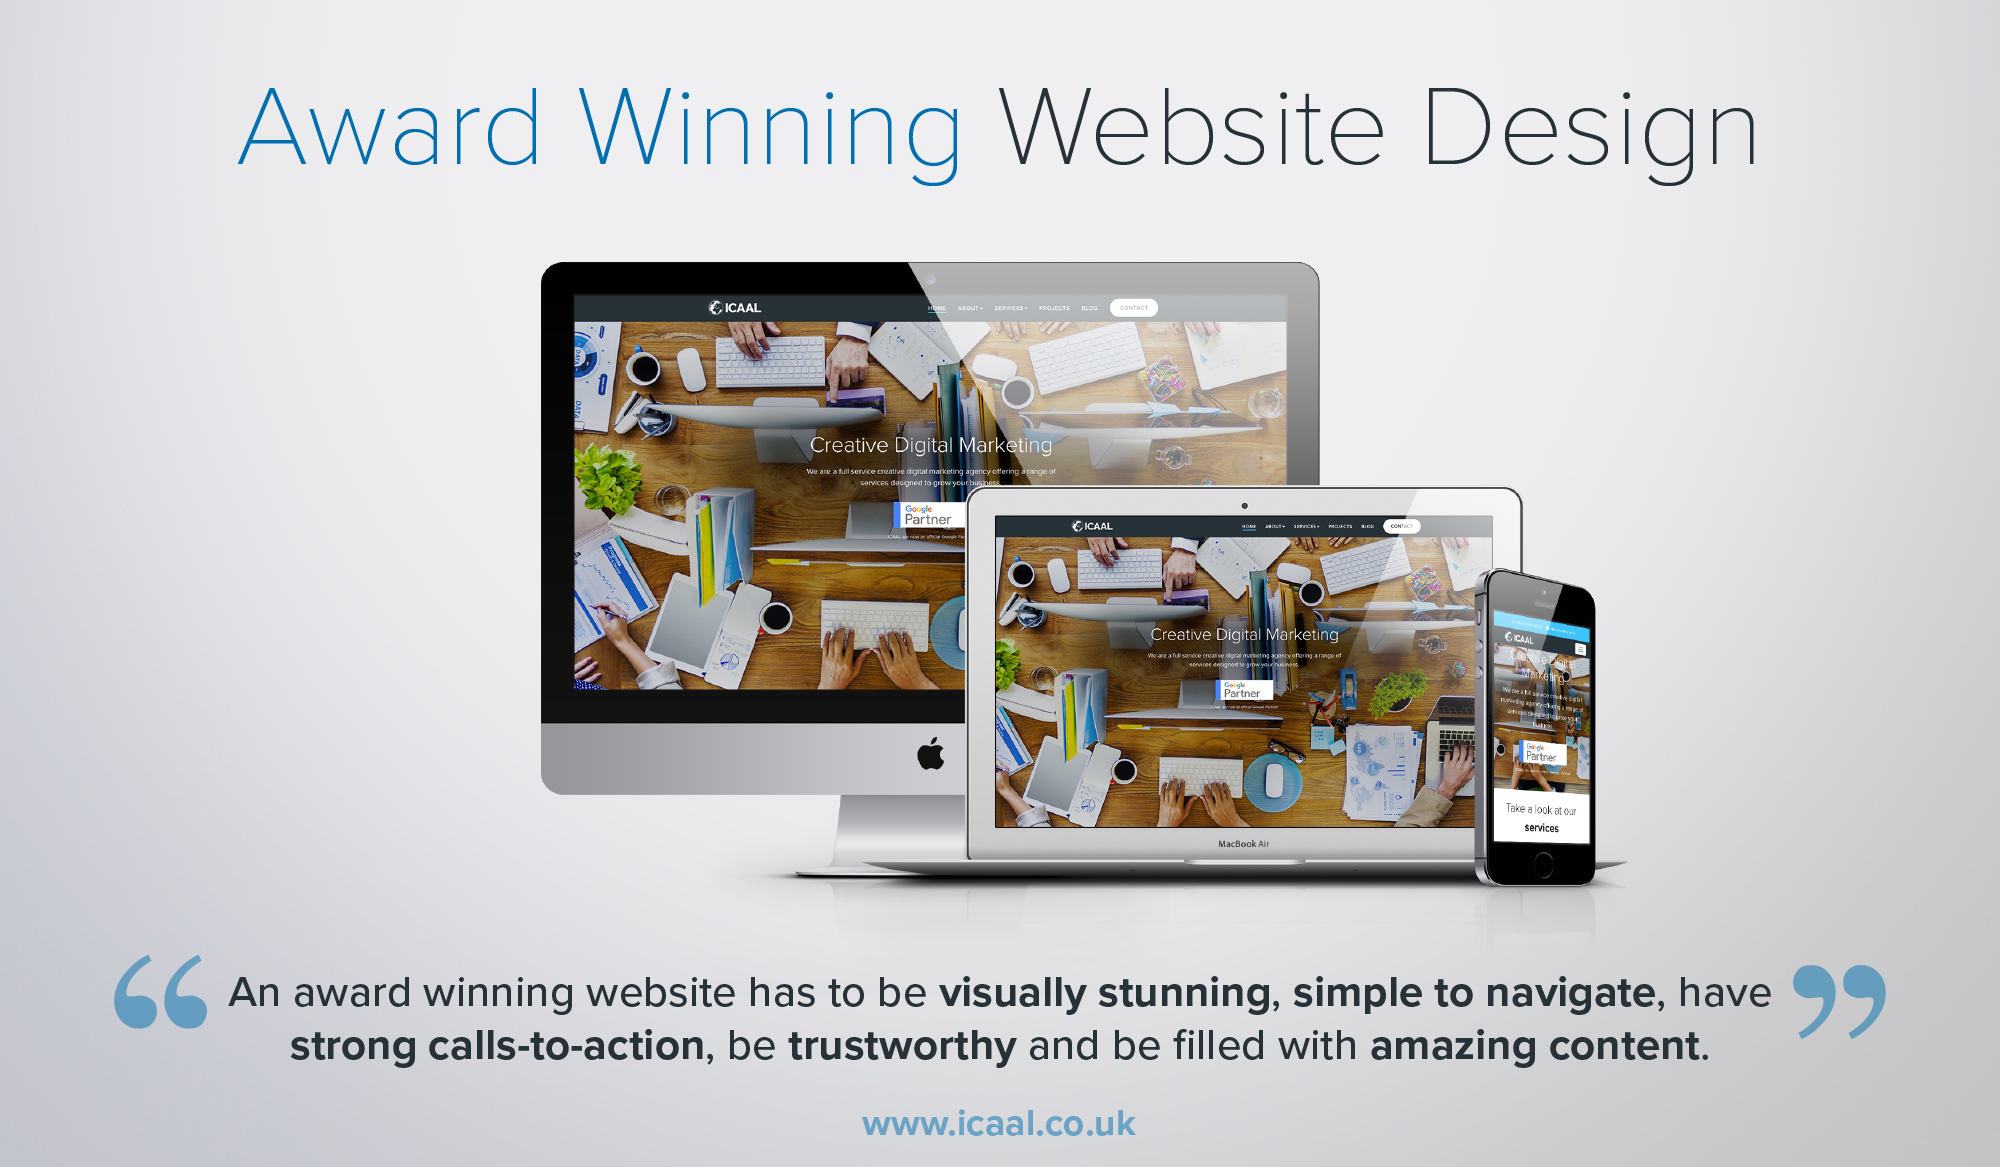 Award Winning Website Design